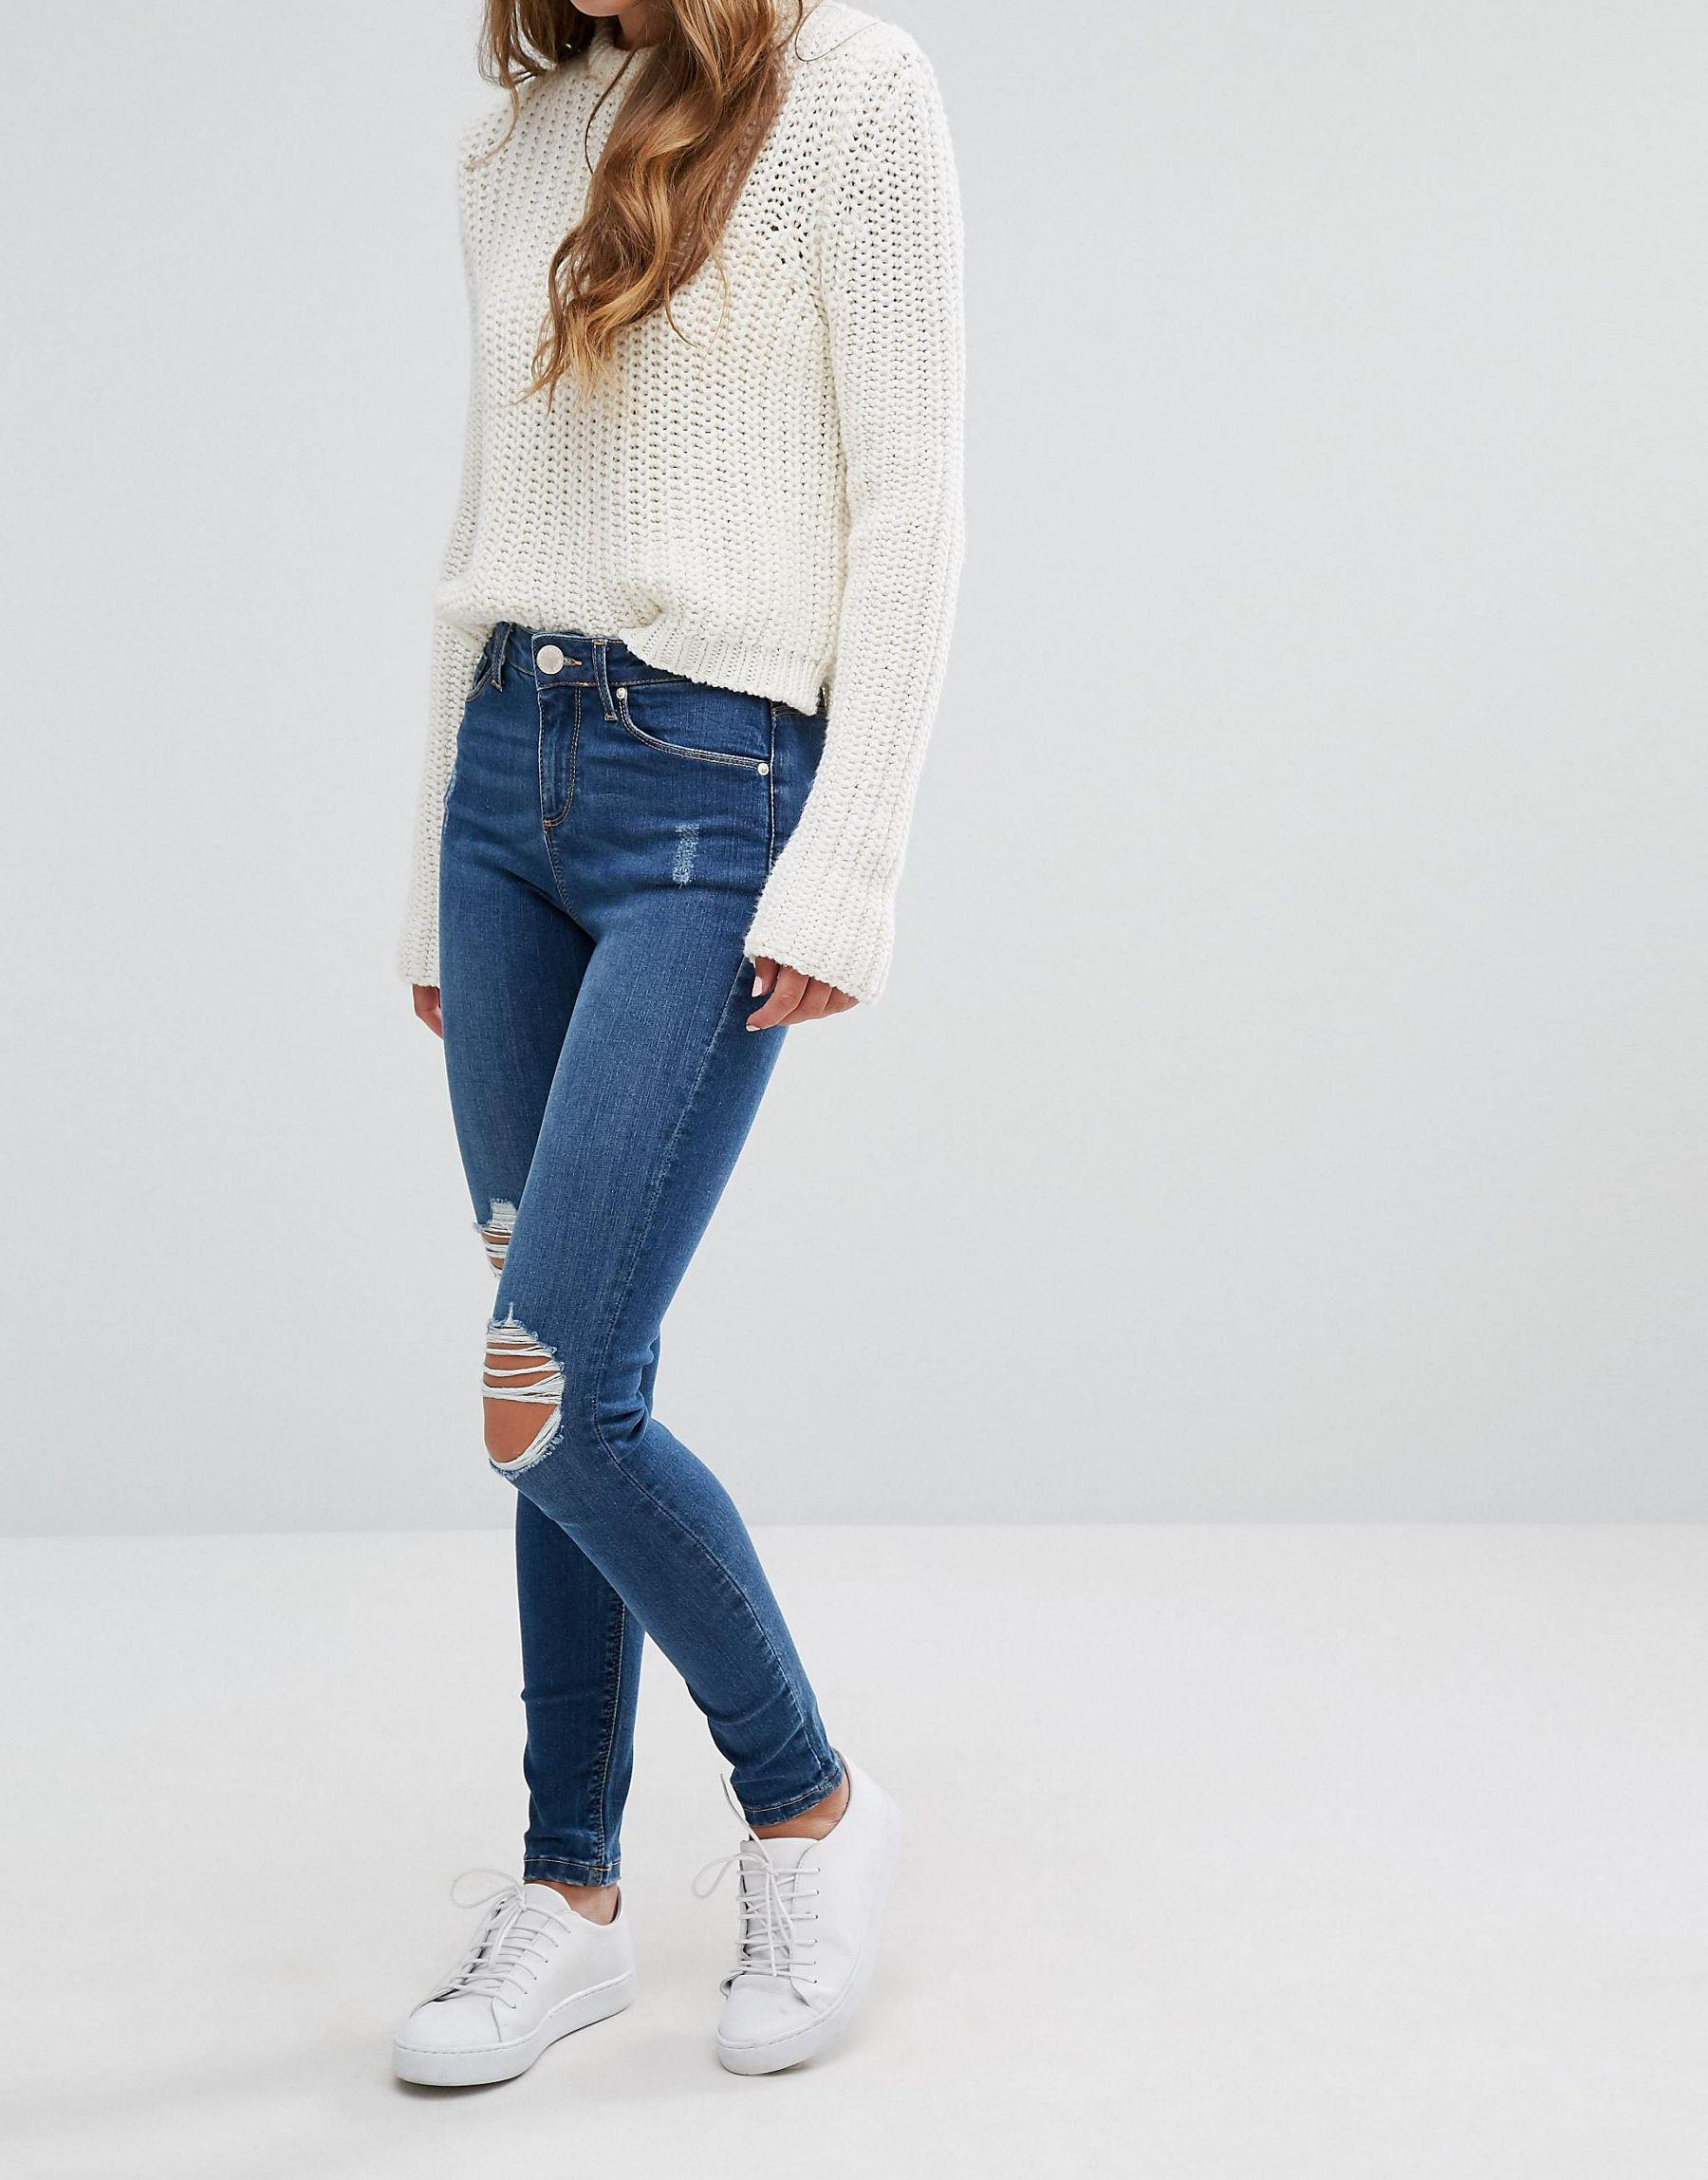 Stuccu: Best Deals on miss me jeans Up To 70% sepfeyms.ga has been visited by 1M+ users in the past monthTypes: Electronics, Toys, Fashion, Home Improvement, Power tools, Sports equipment.